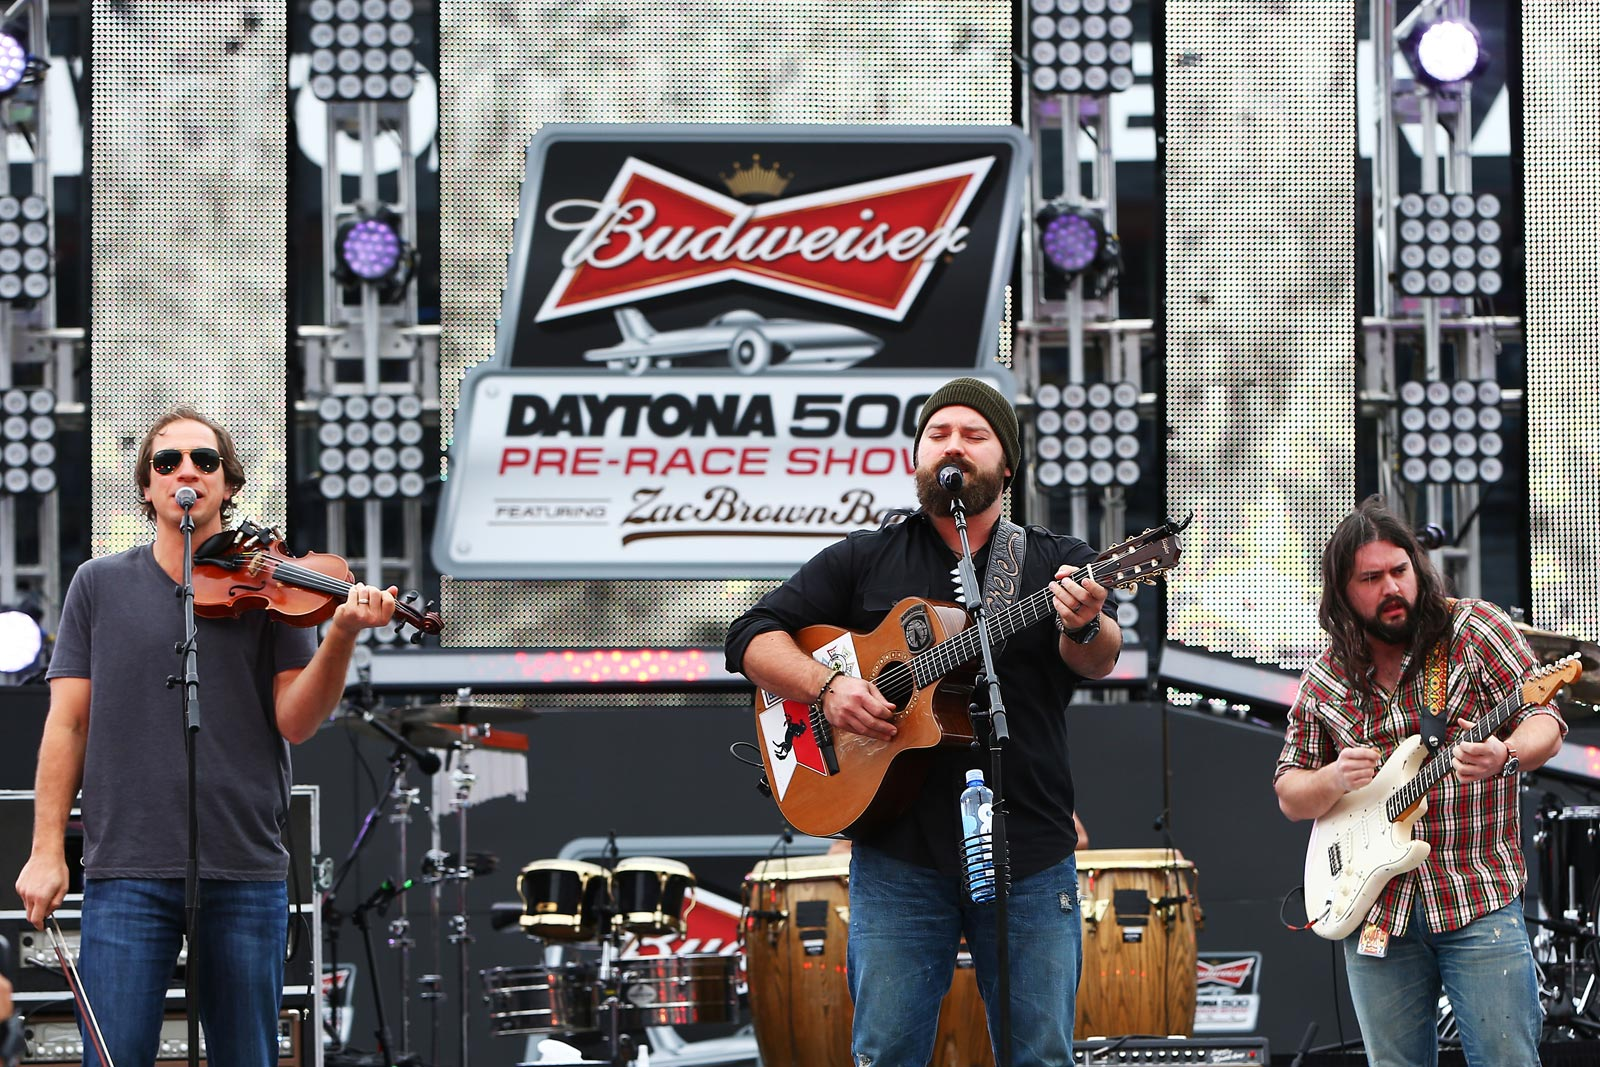 2013_NASCAR_Daytona_500_PreRace_Show_Zac_Brown_Band